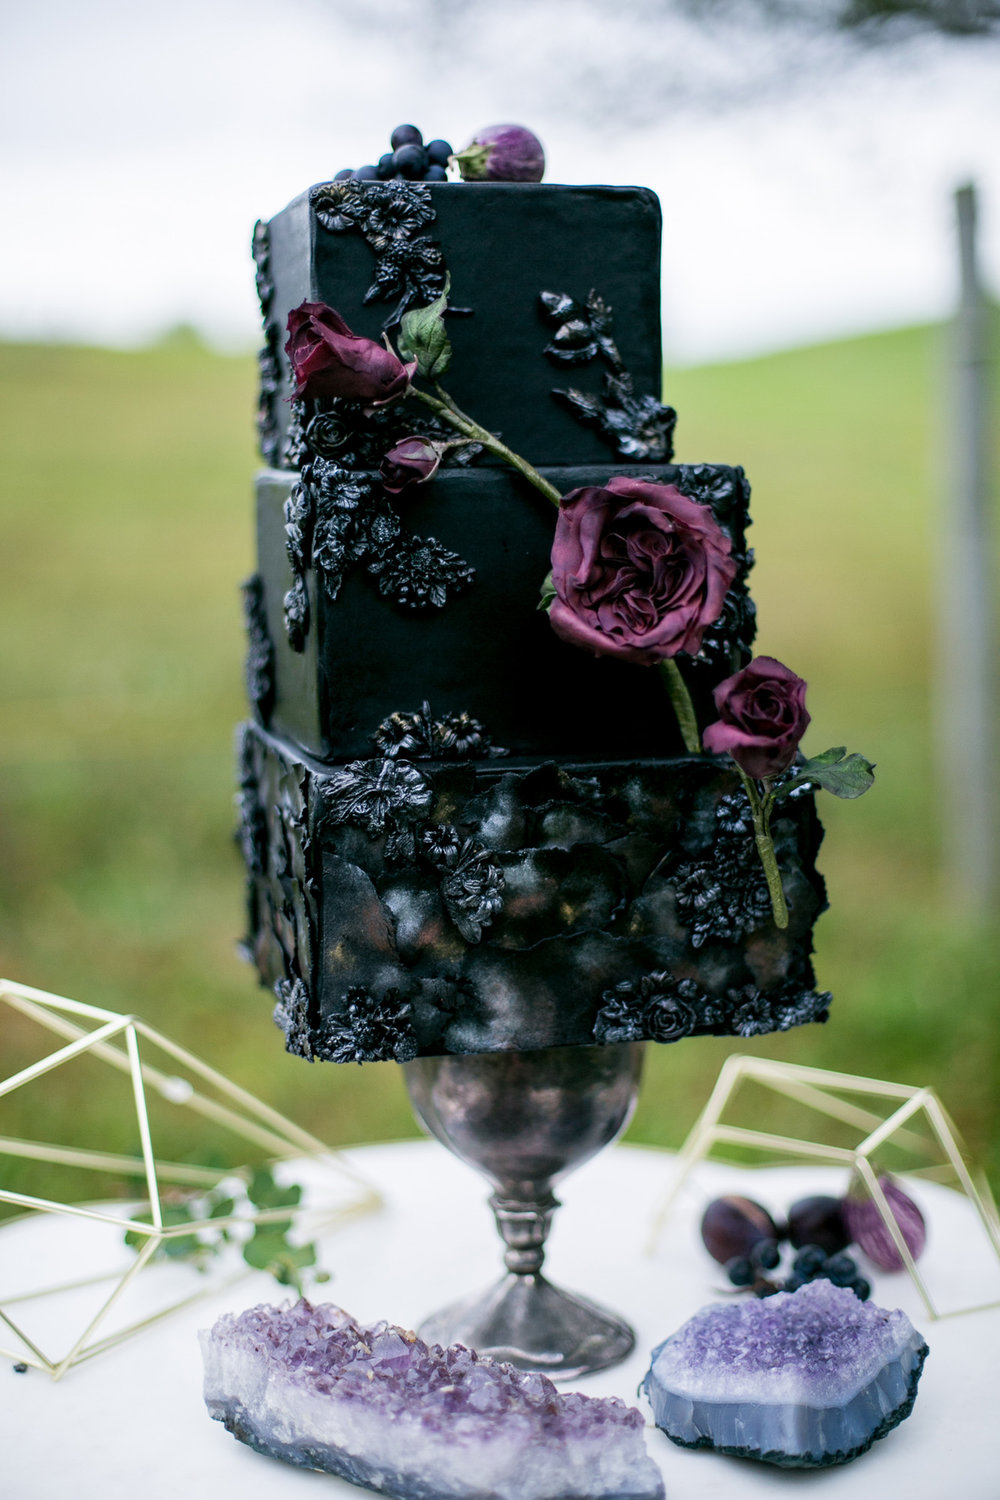 Black Wedding Cake with Purple Sugar Flowers — from Moody and Dramatic Wedding Ideas - photo by Chantal Routhier Photography — click to see more inspiration on www.BrendasWeddingBlog.com